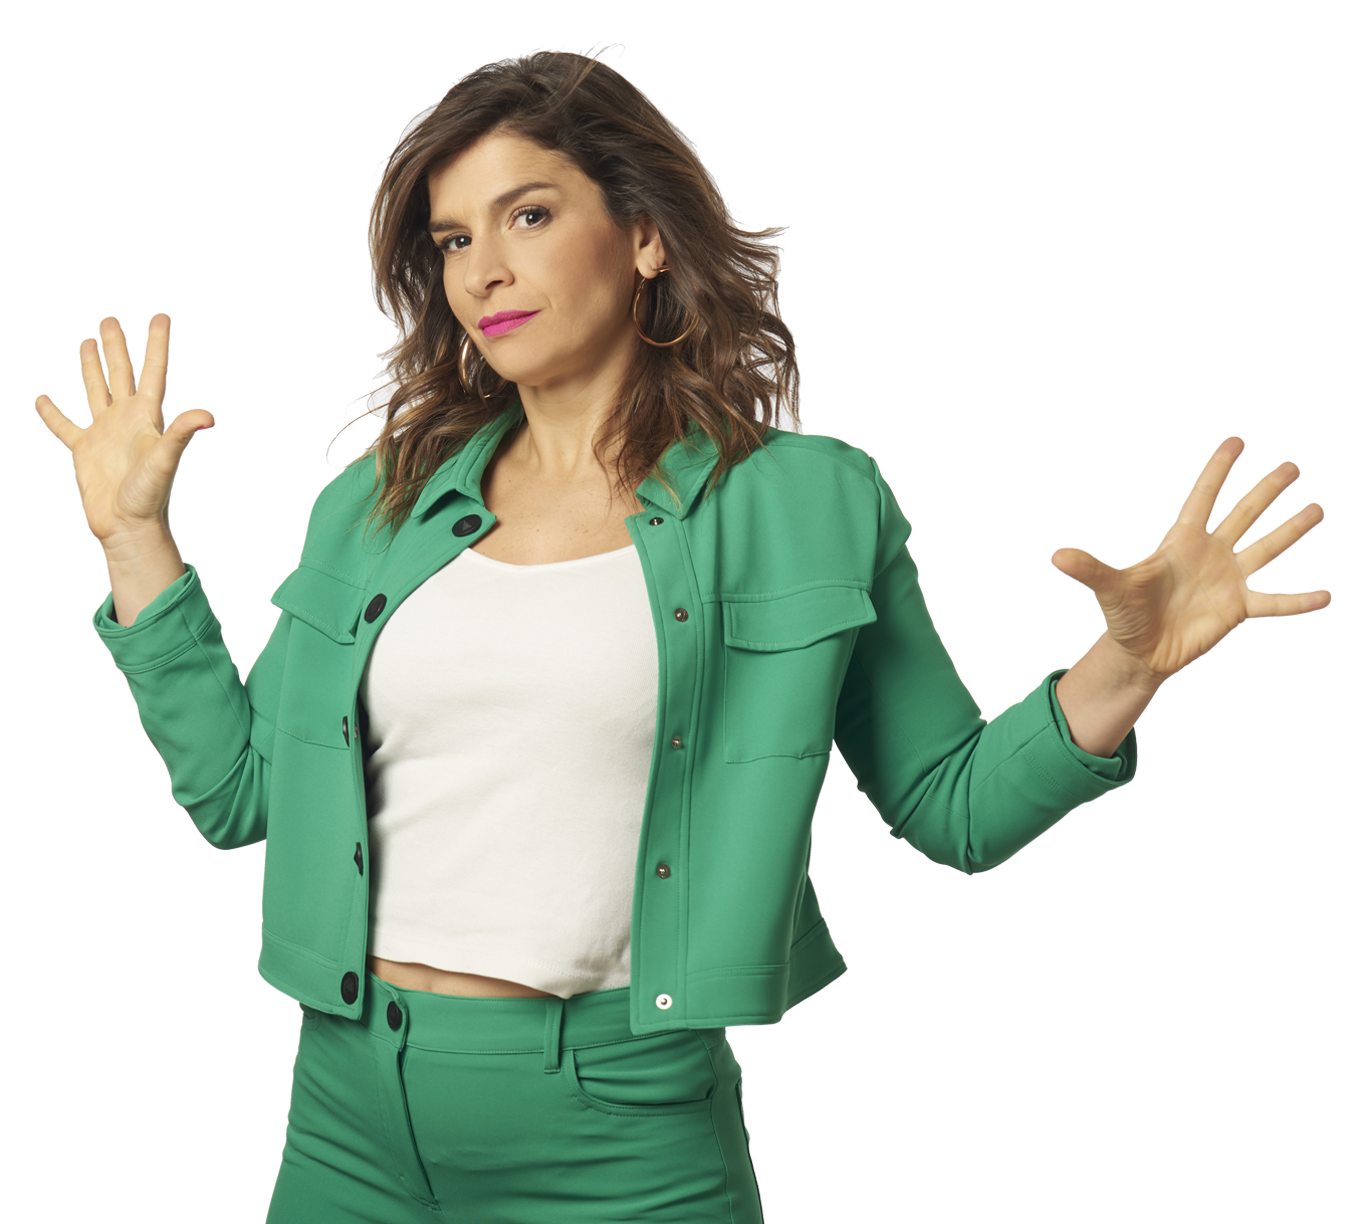 http://www.daliagutmann.com.ar/wp-content/uploads/2019/03/Campera-verde-2-Que-hice.png